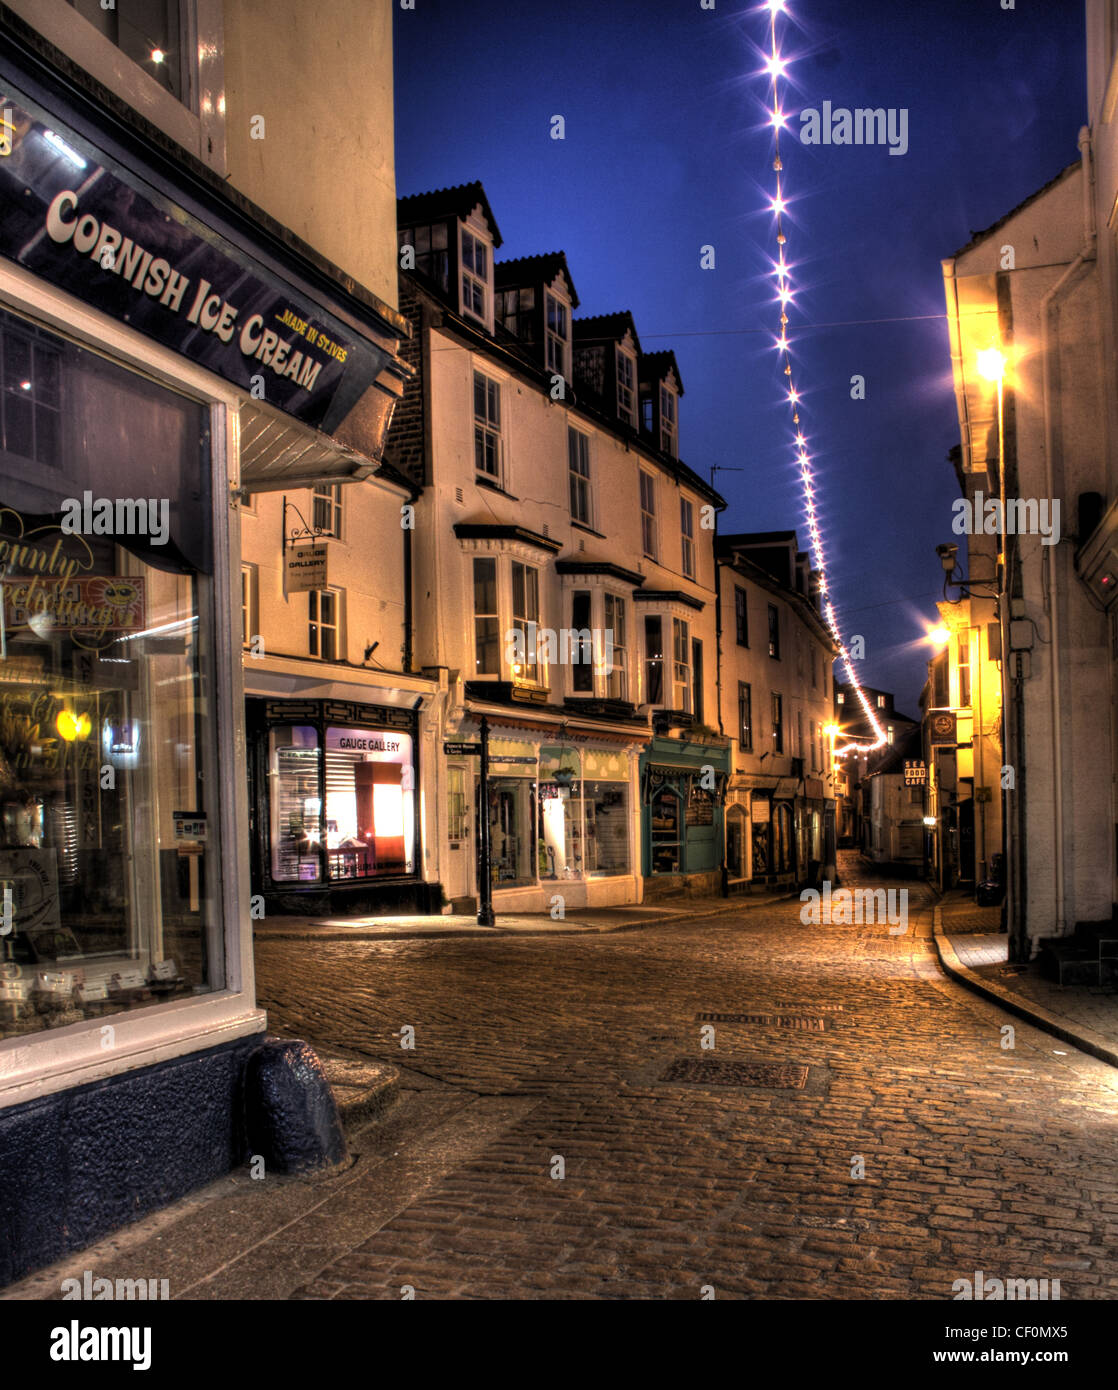 Dusk in St Ives Town, Fore Street, Cornish Ice Cream Shop, Cornwall, South West England, UK - Stock Image